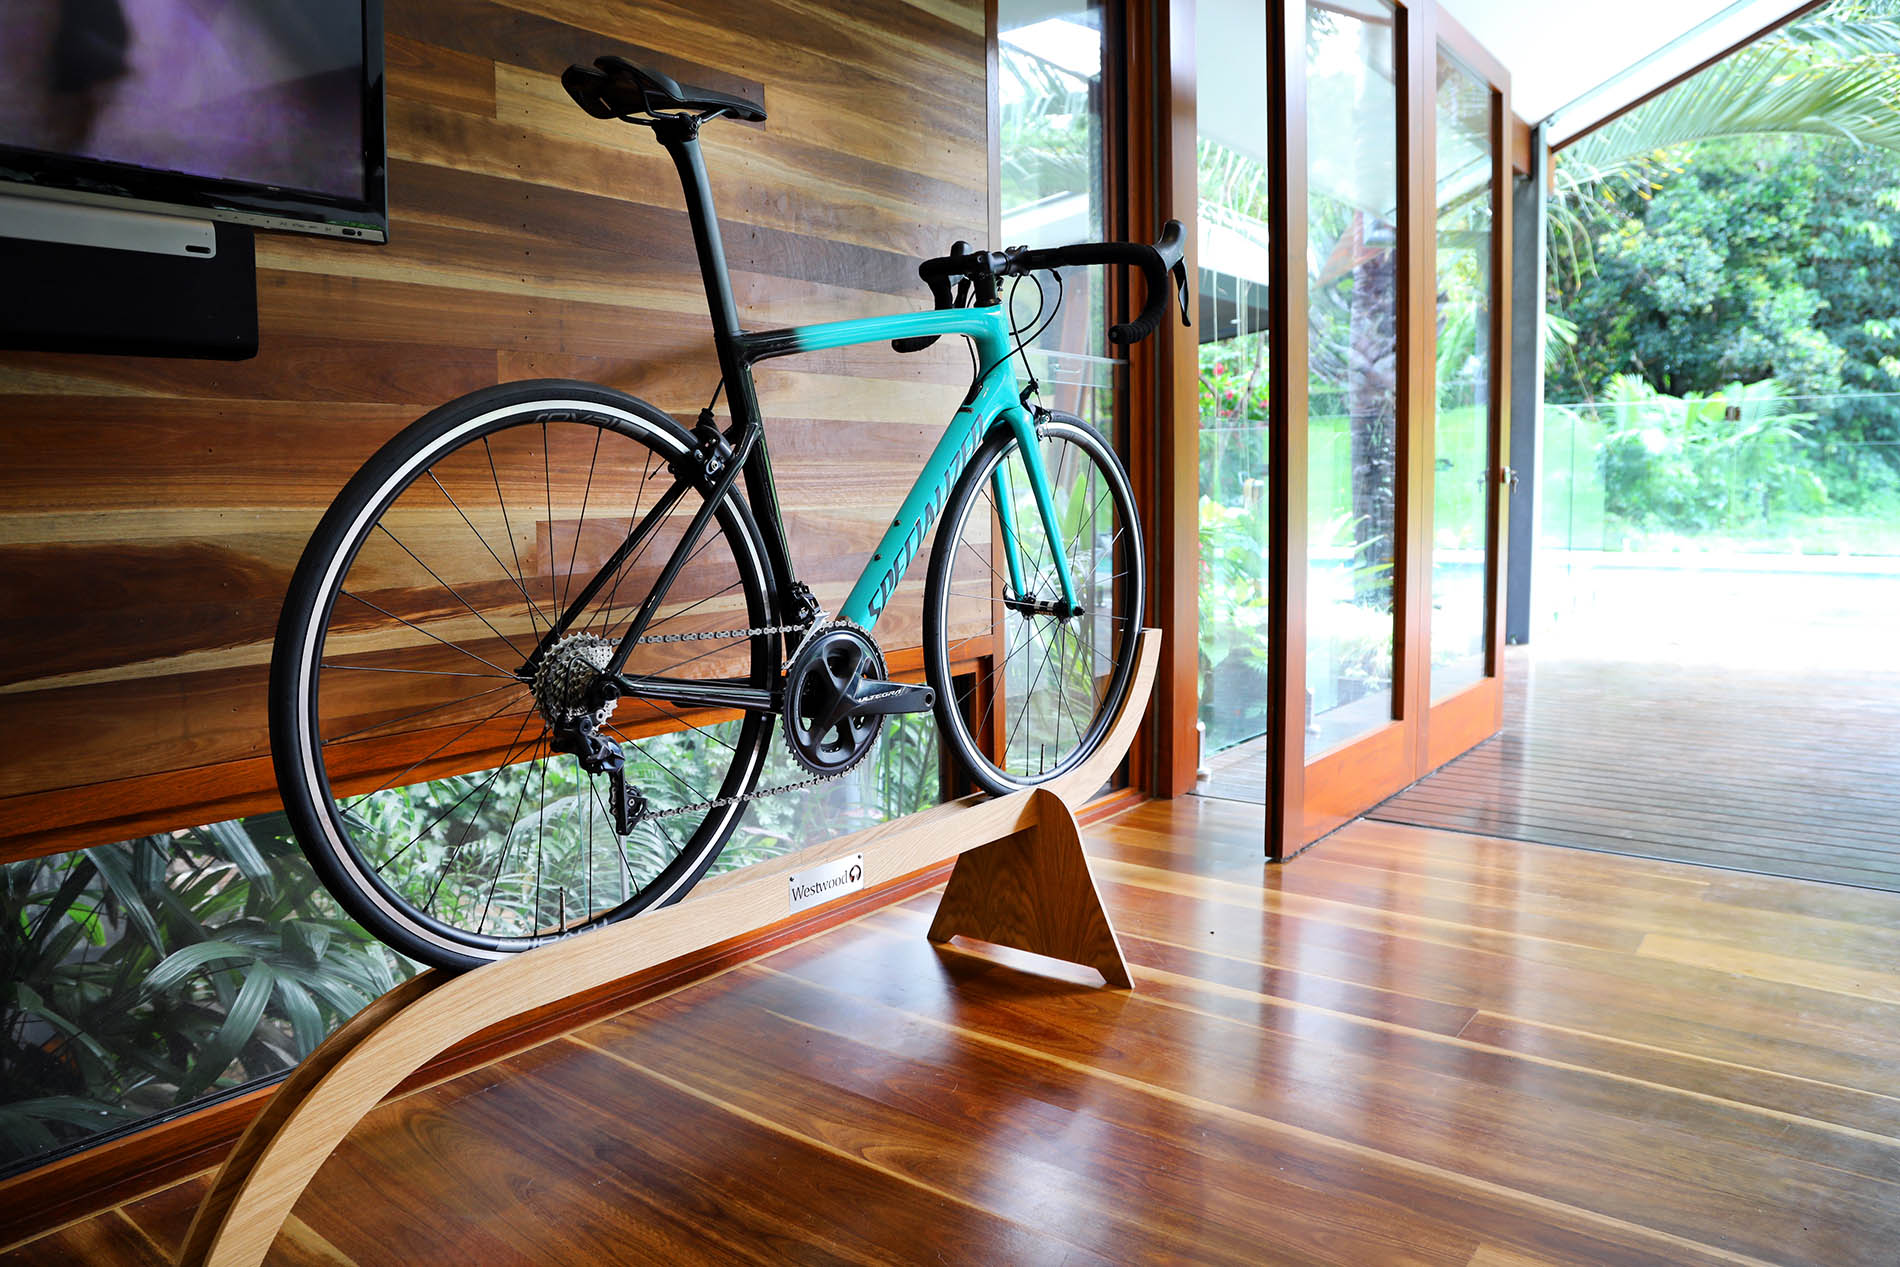 Designer Bike Stand Displaying a Sports Road Bicycle